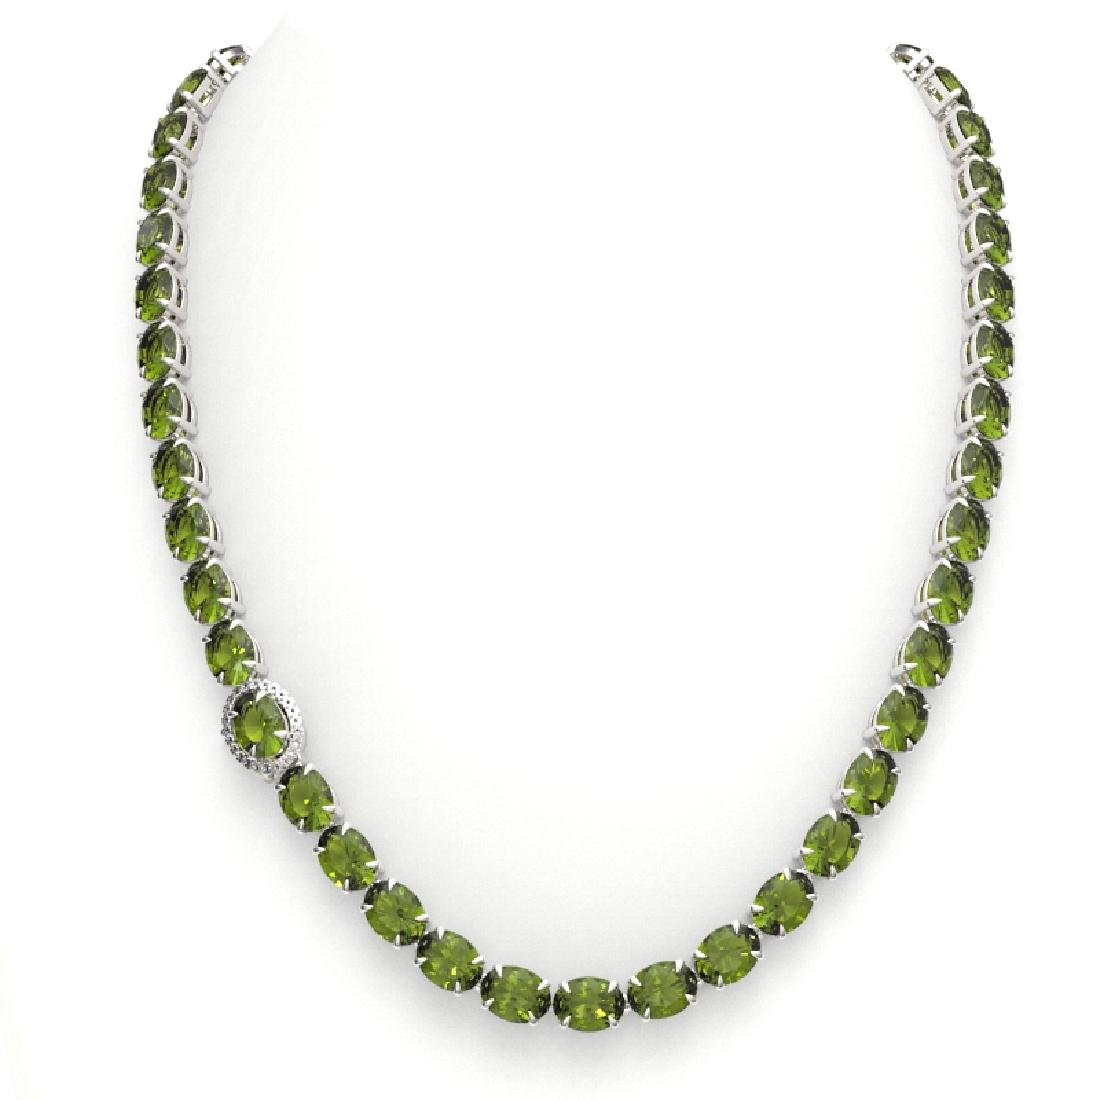 35.25 CTW Green Tourmaline & VS/SI Diamond Tennis Micro - 3